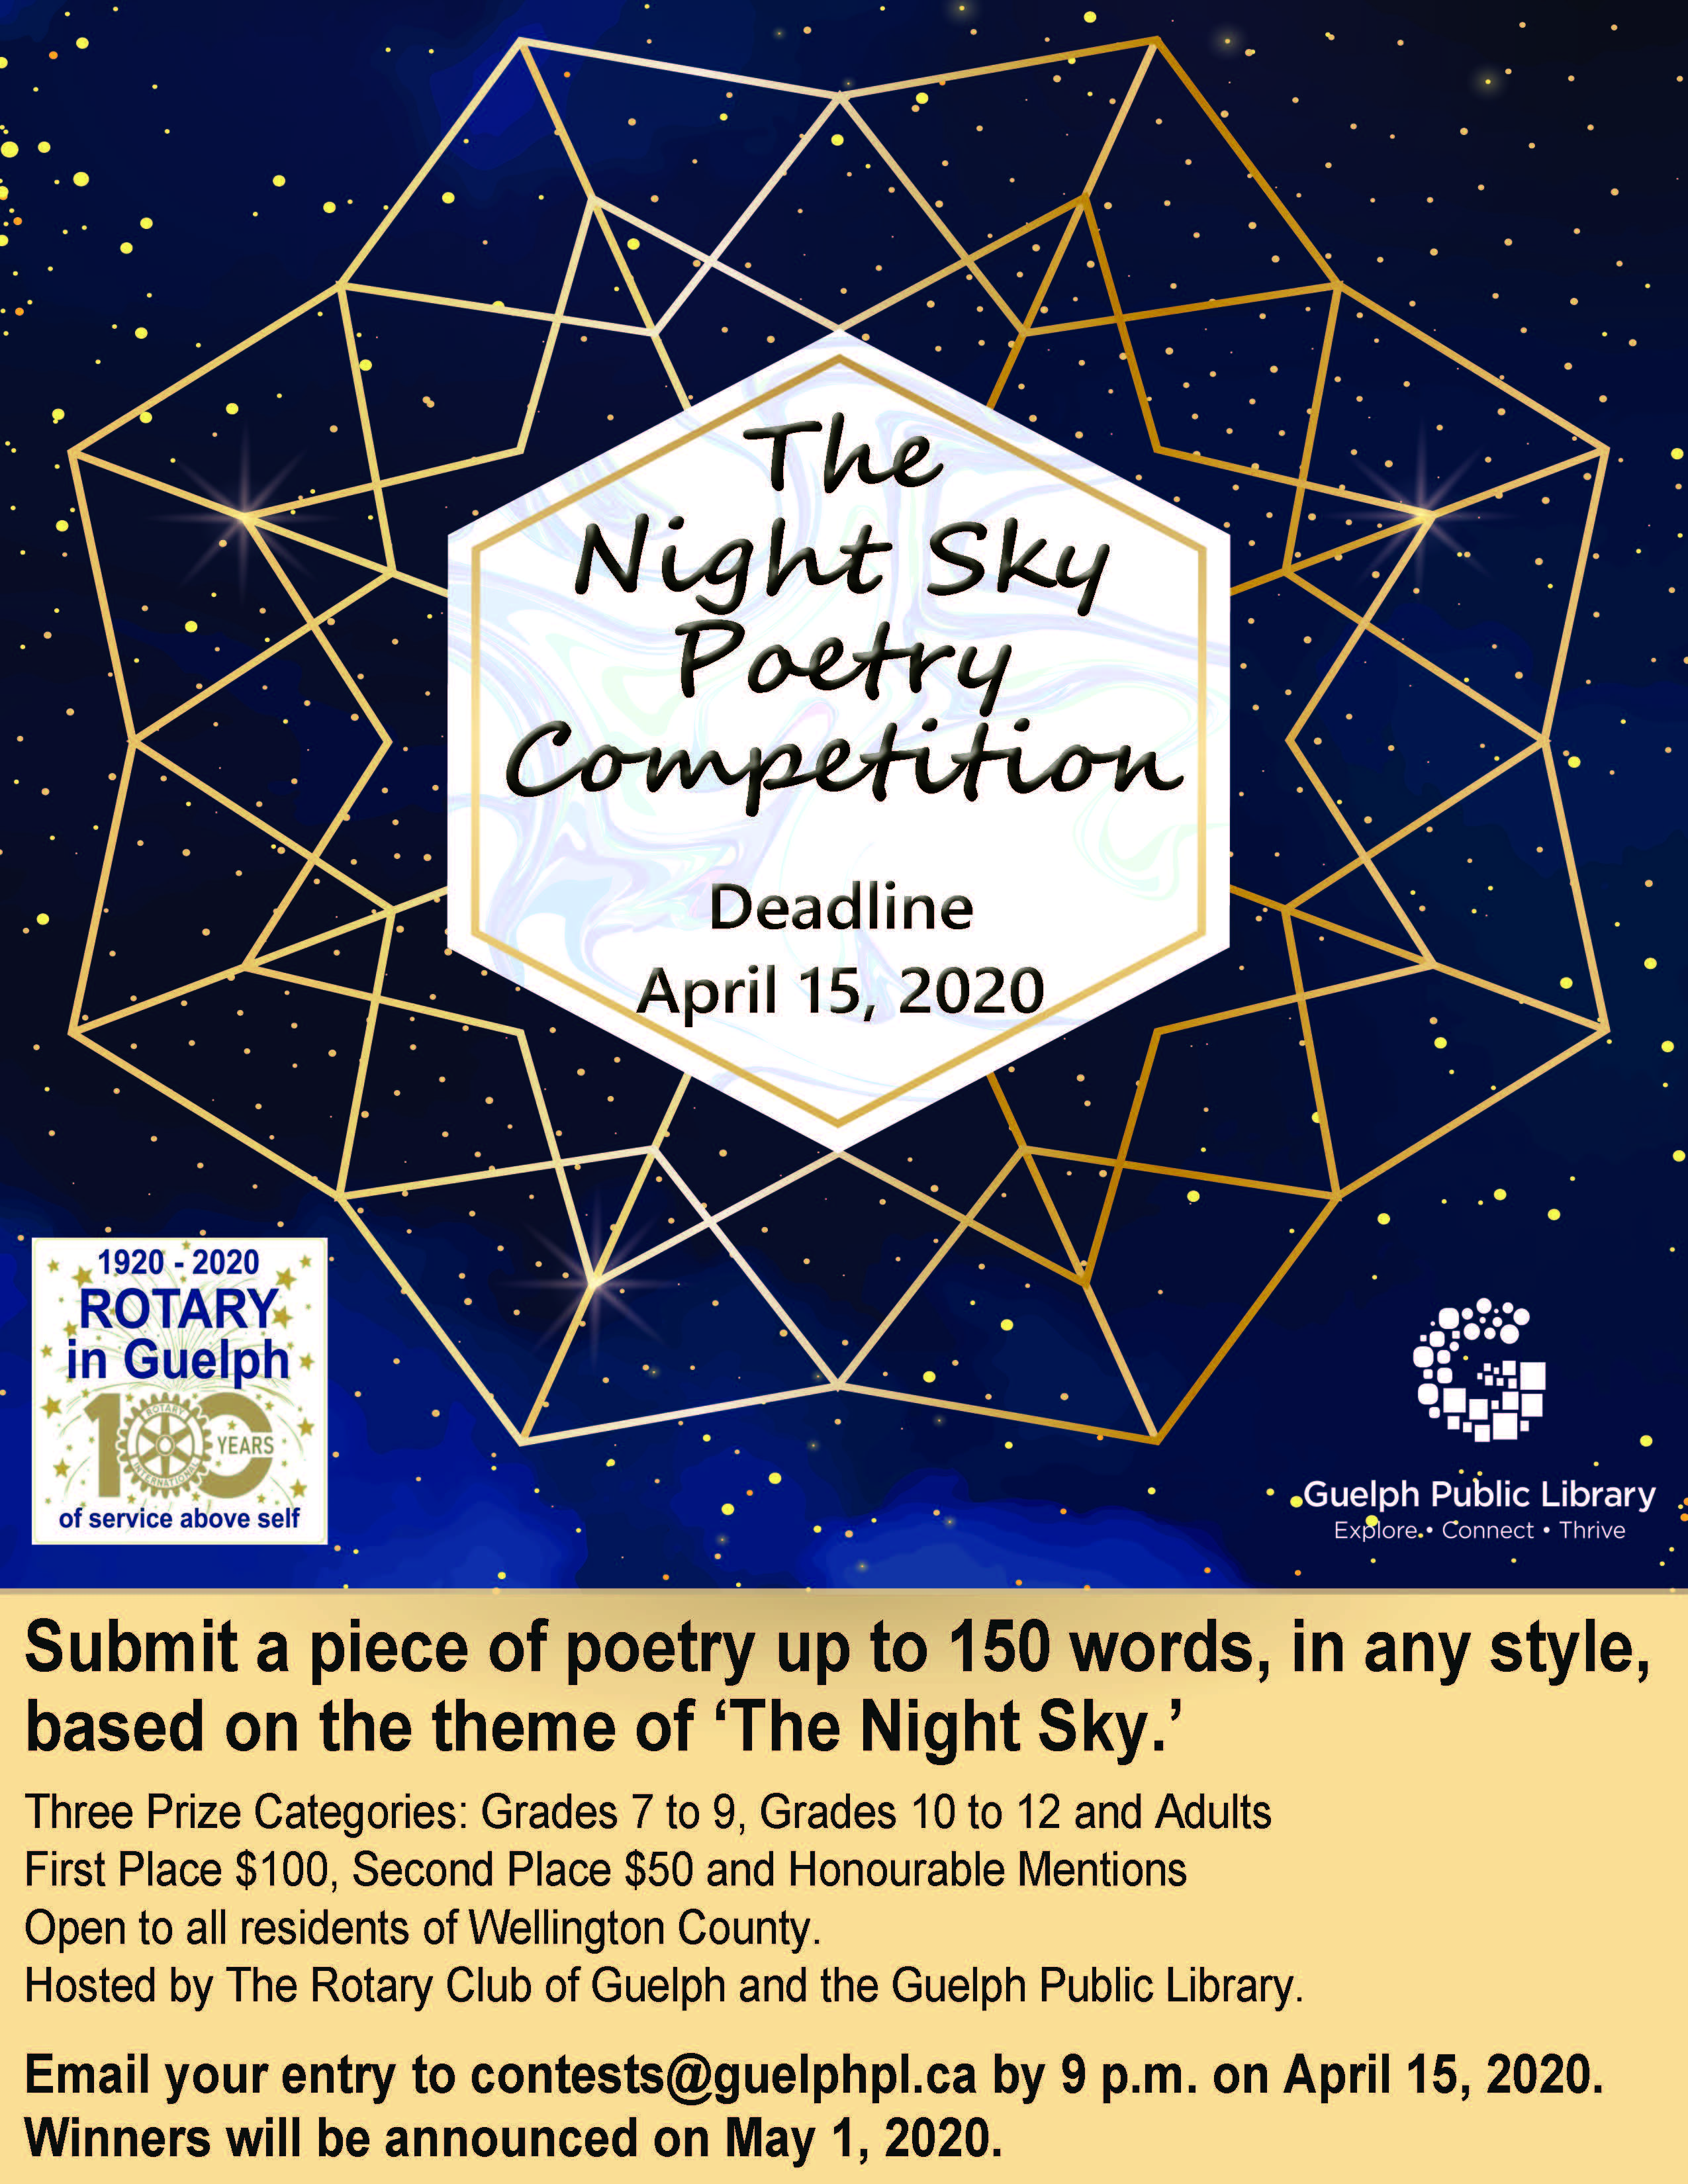 The NIght Sky Poetry Competition